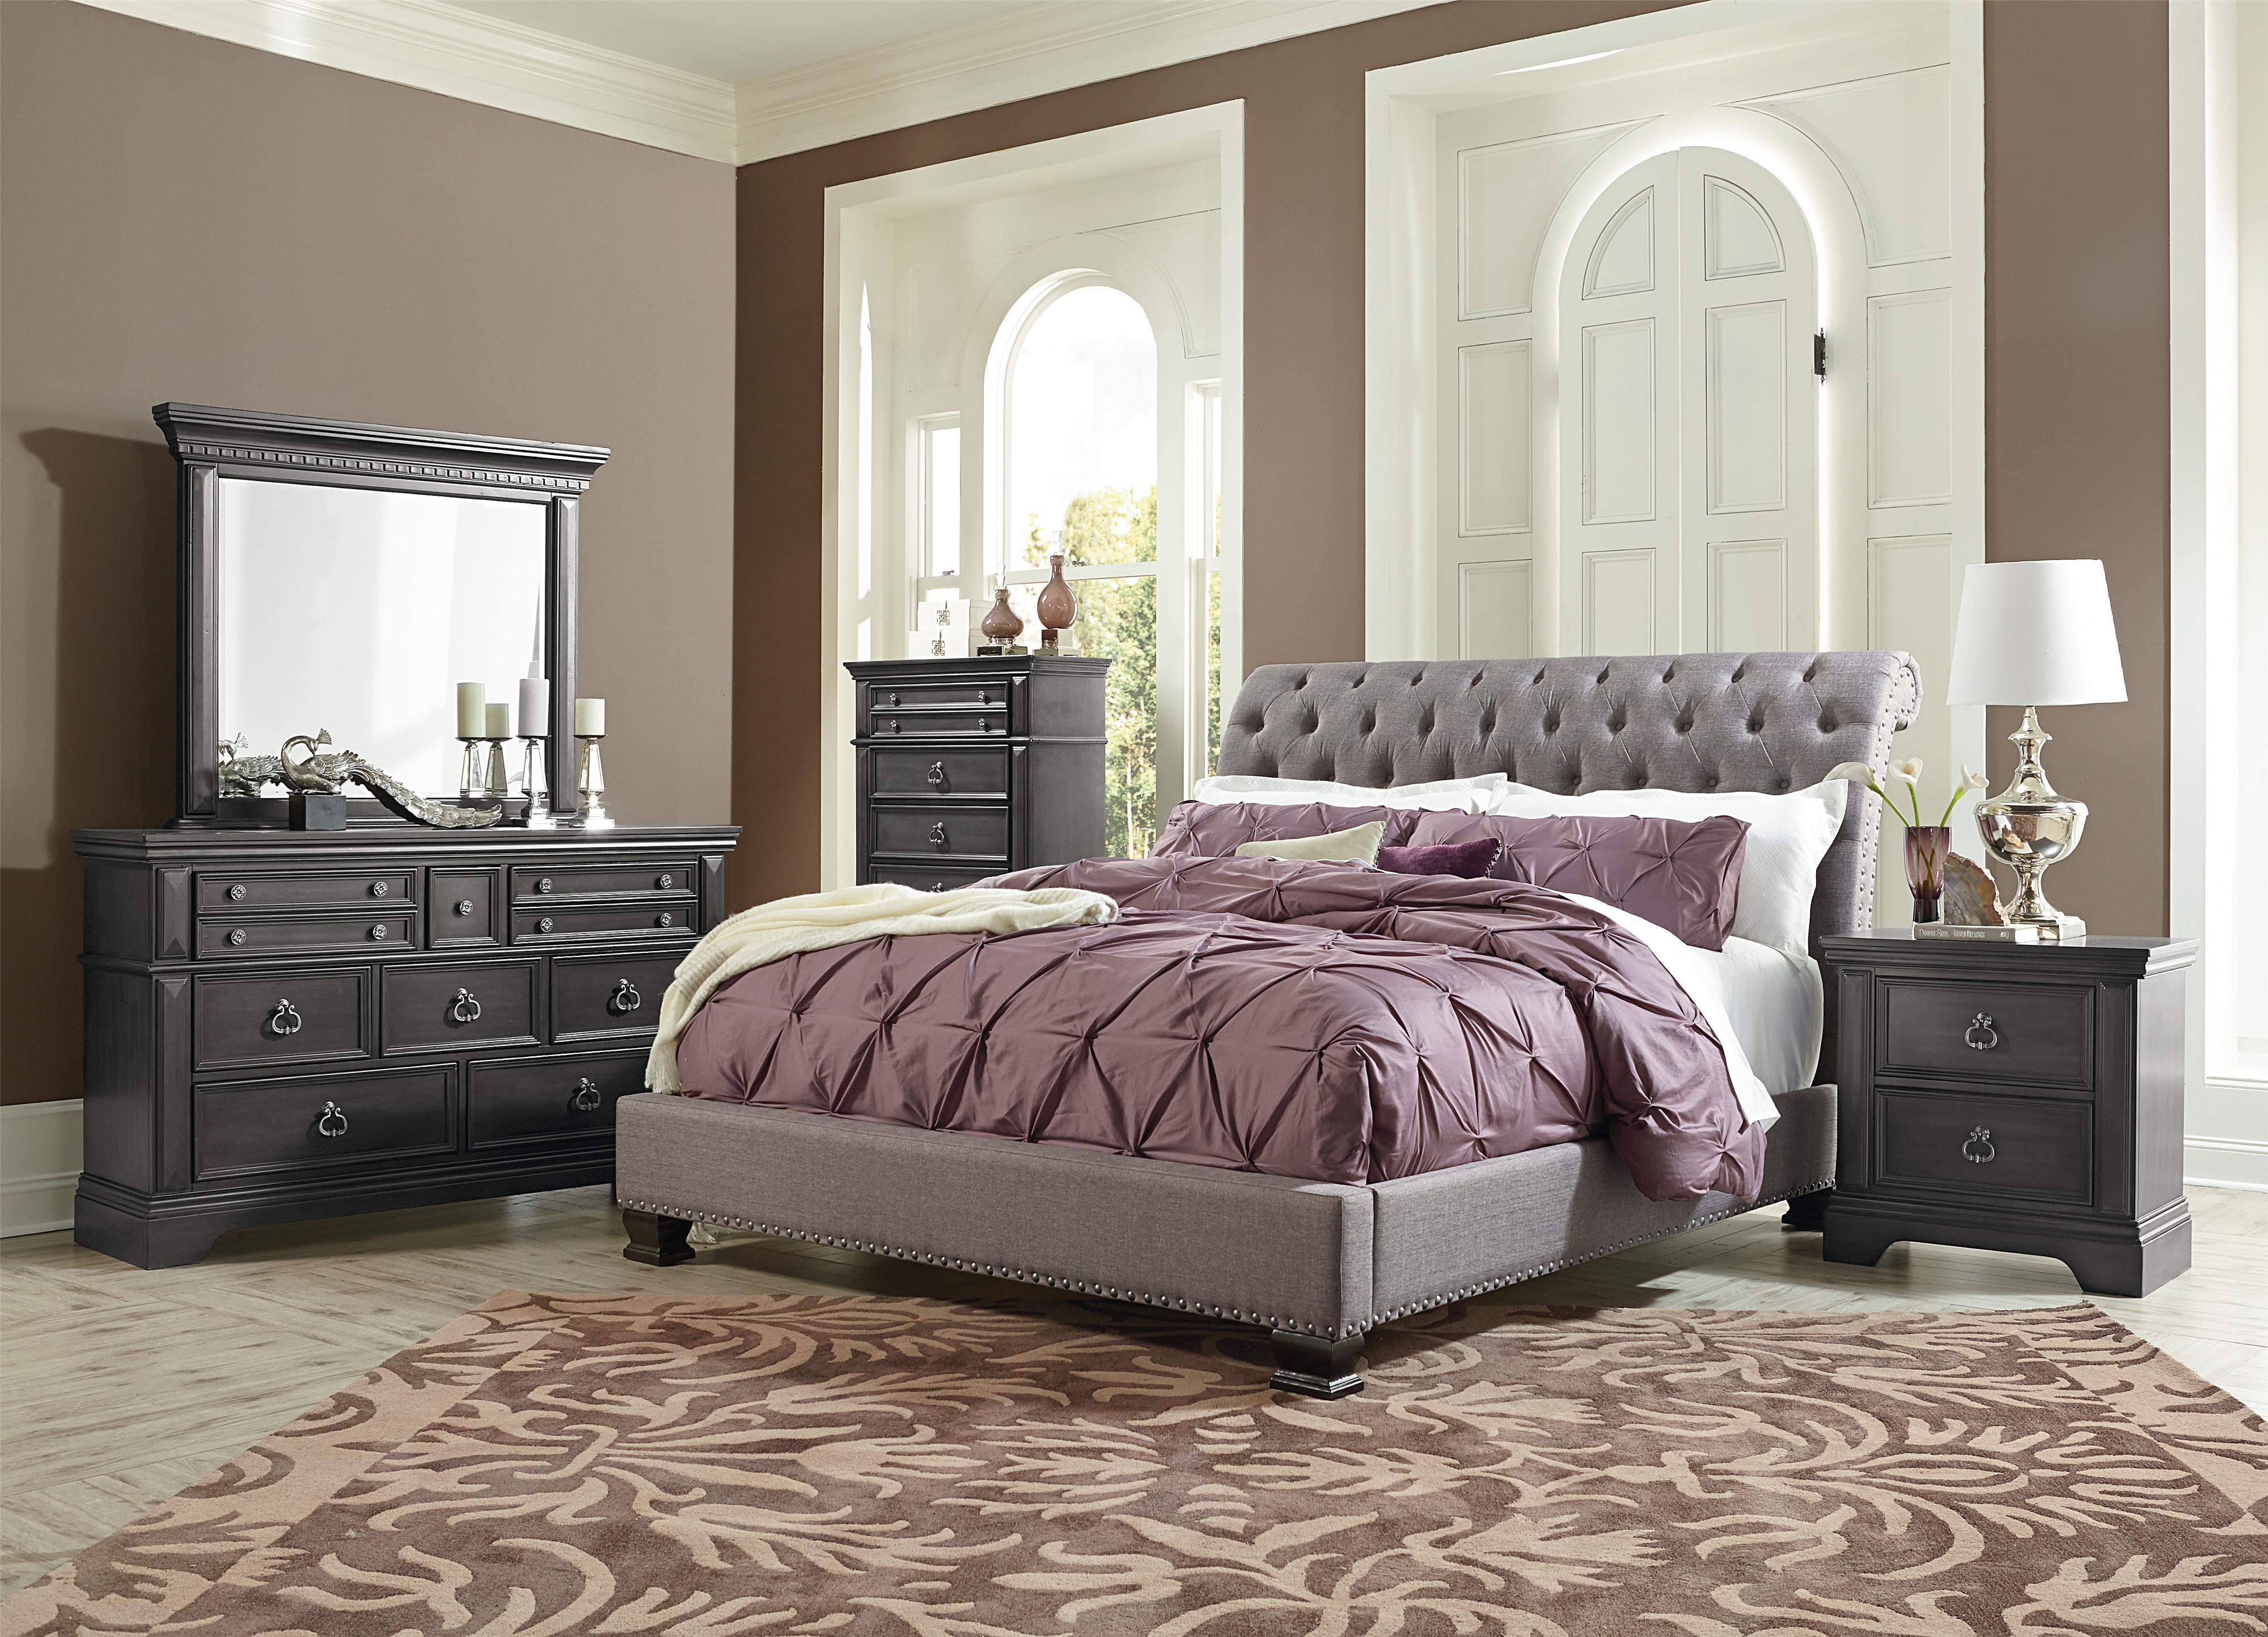 Standard Furniture Garrison Bedroom Queen Bedroom Group - Item Number: 86300 Q Bedroom Group 3